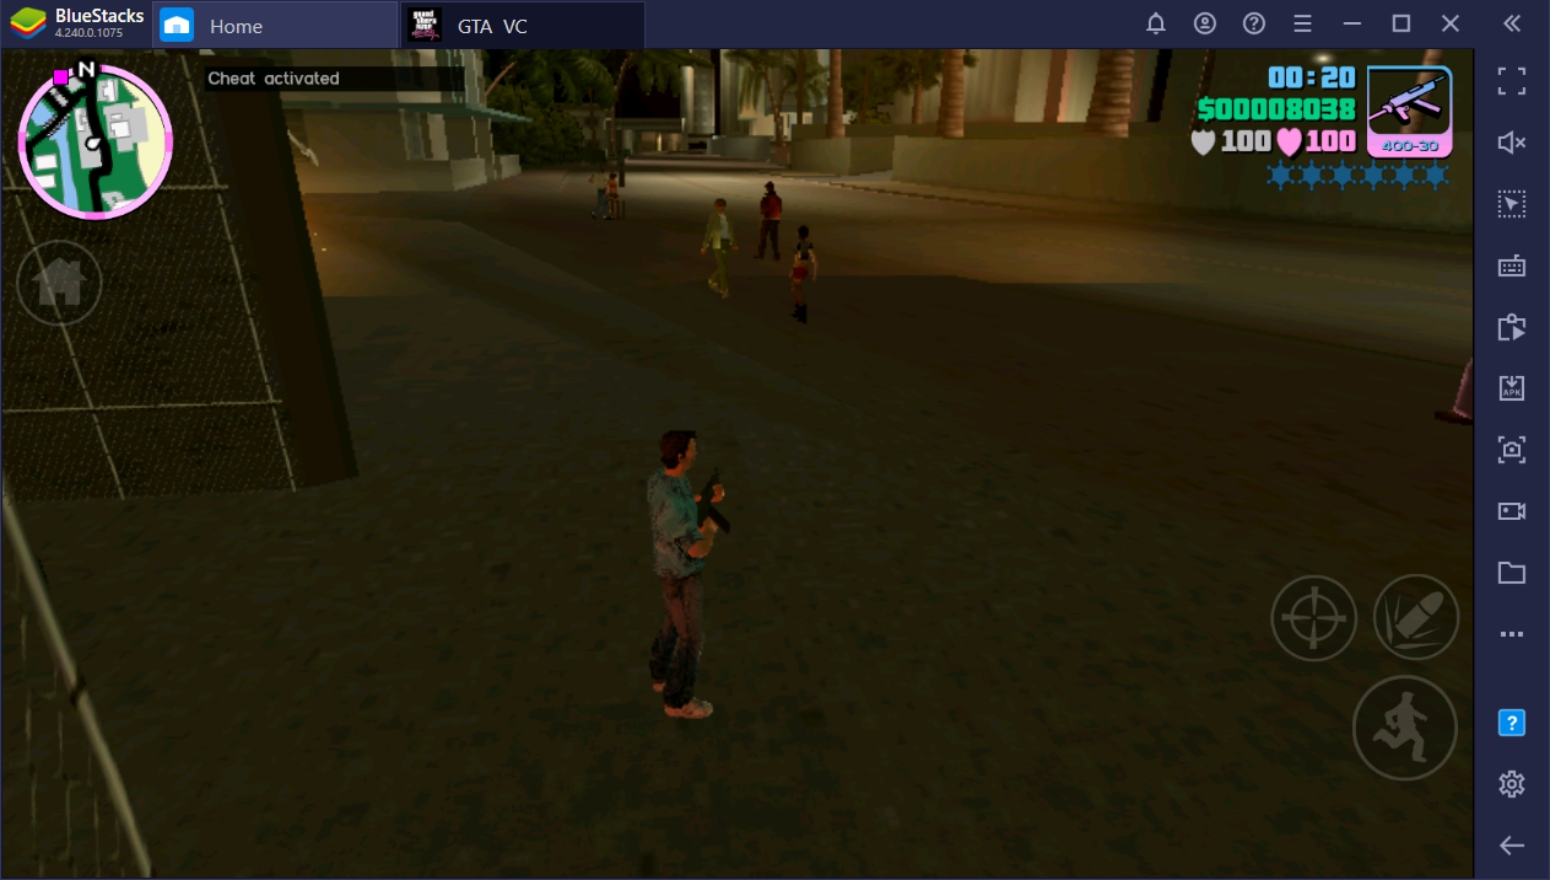 How to Input Cheats in GTA Vice City Mobile